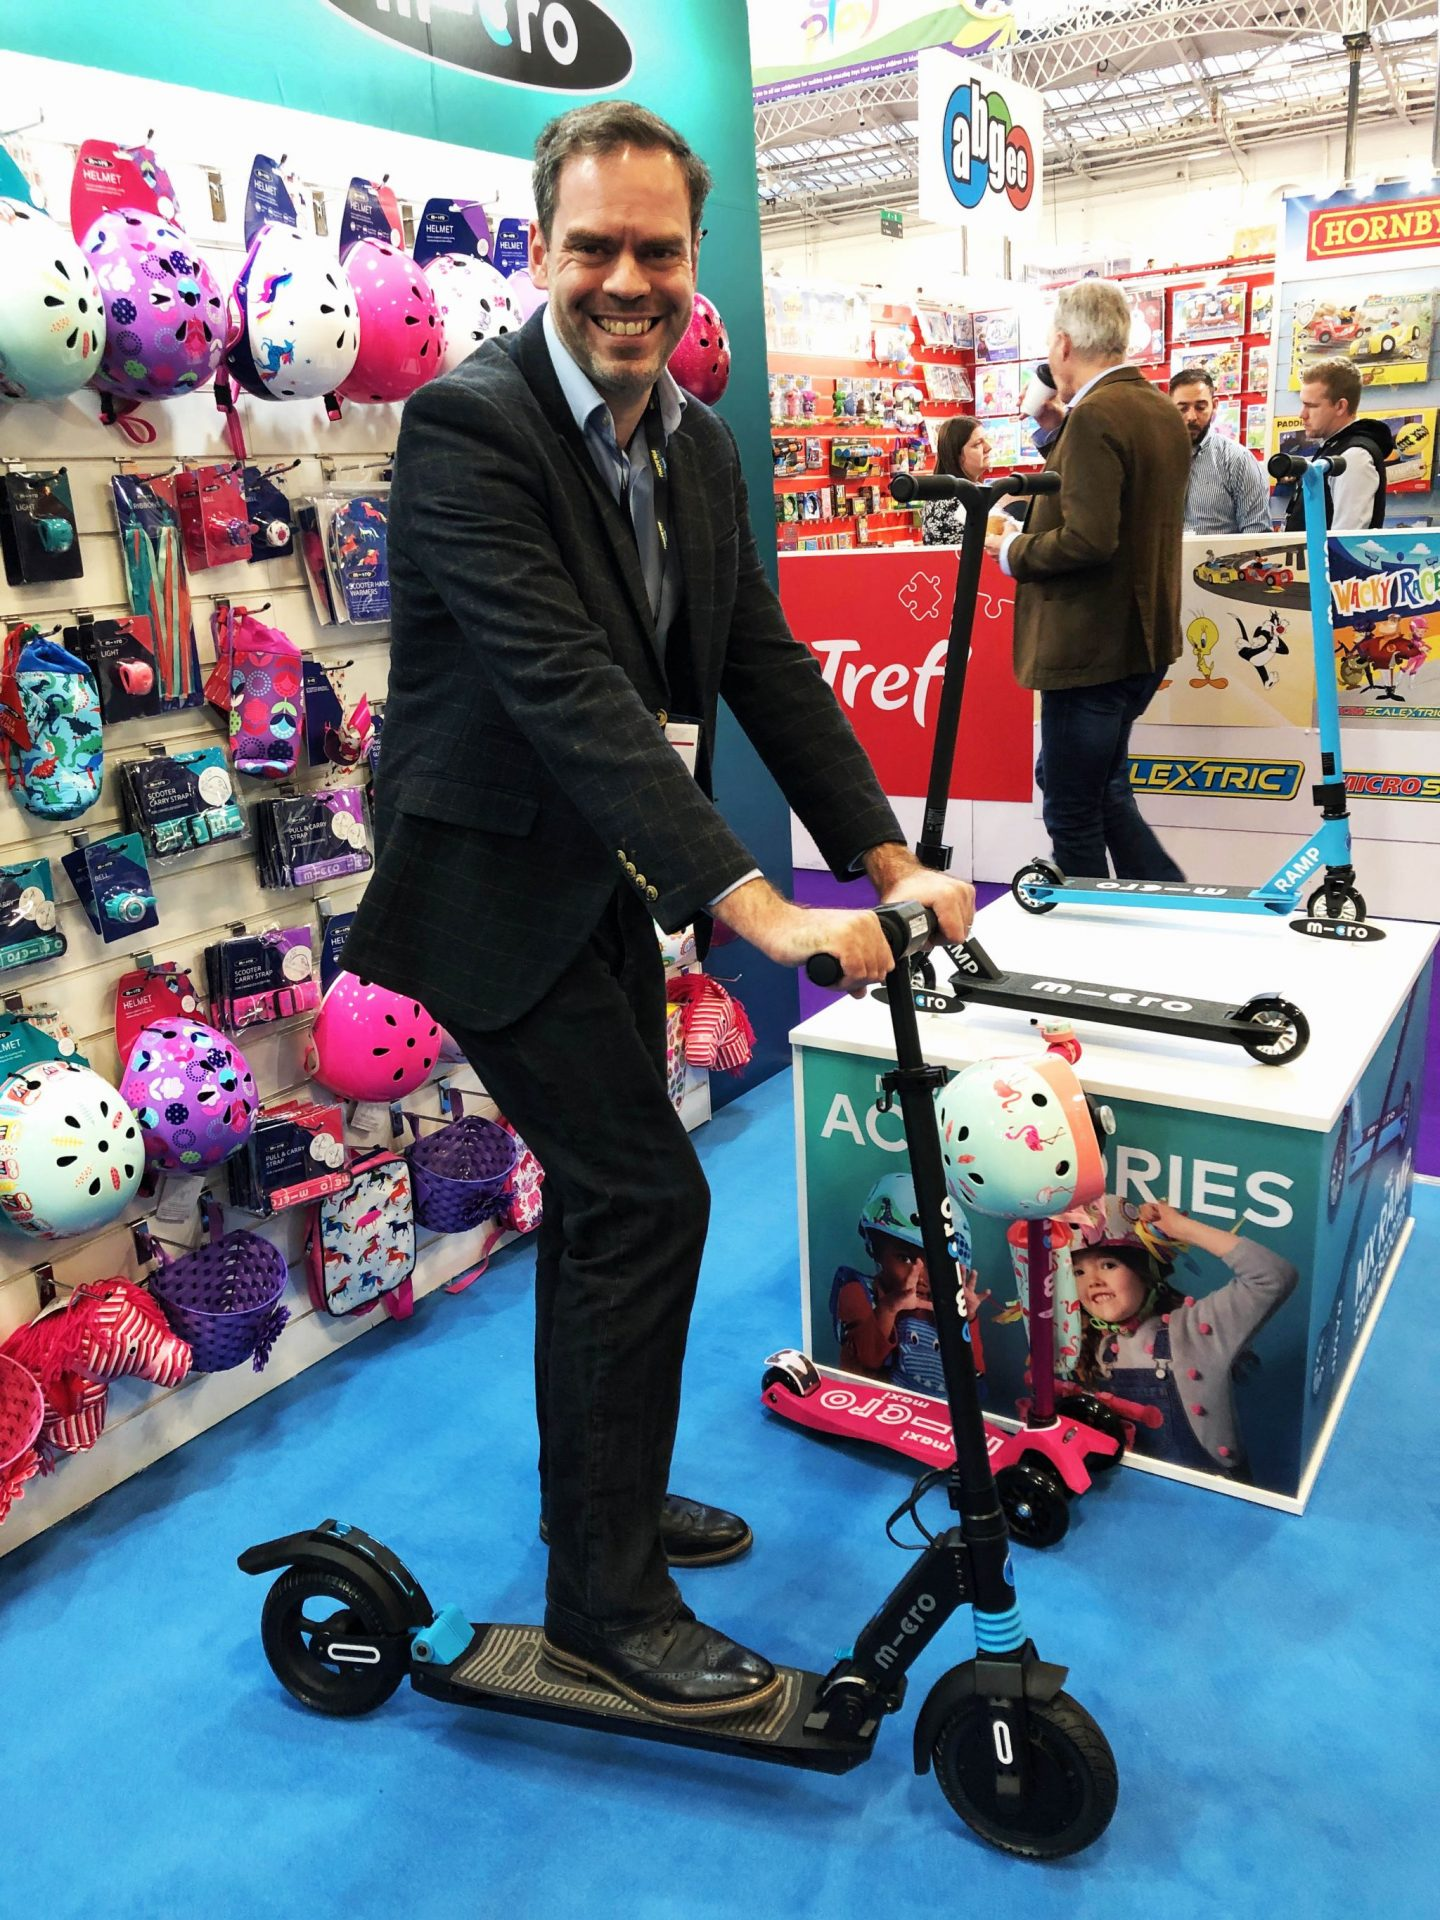 The Toy Fair, Toy Fair 2019, The Toy Fair 2019, Microscooters, dadbloguk, dad blog uk, dadbloguk.com, school run dad, sahd, wahd toys, gifts